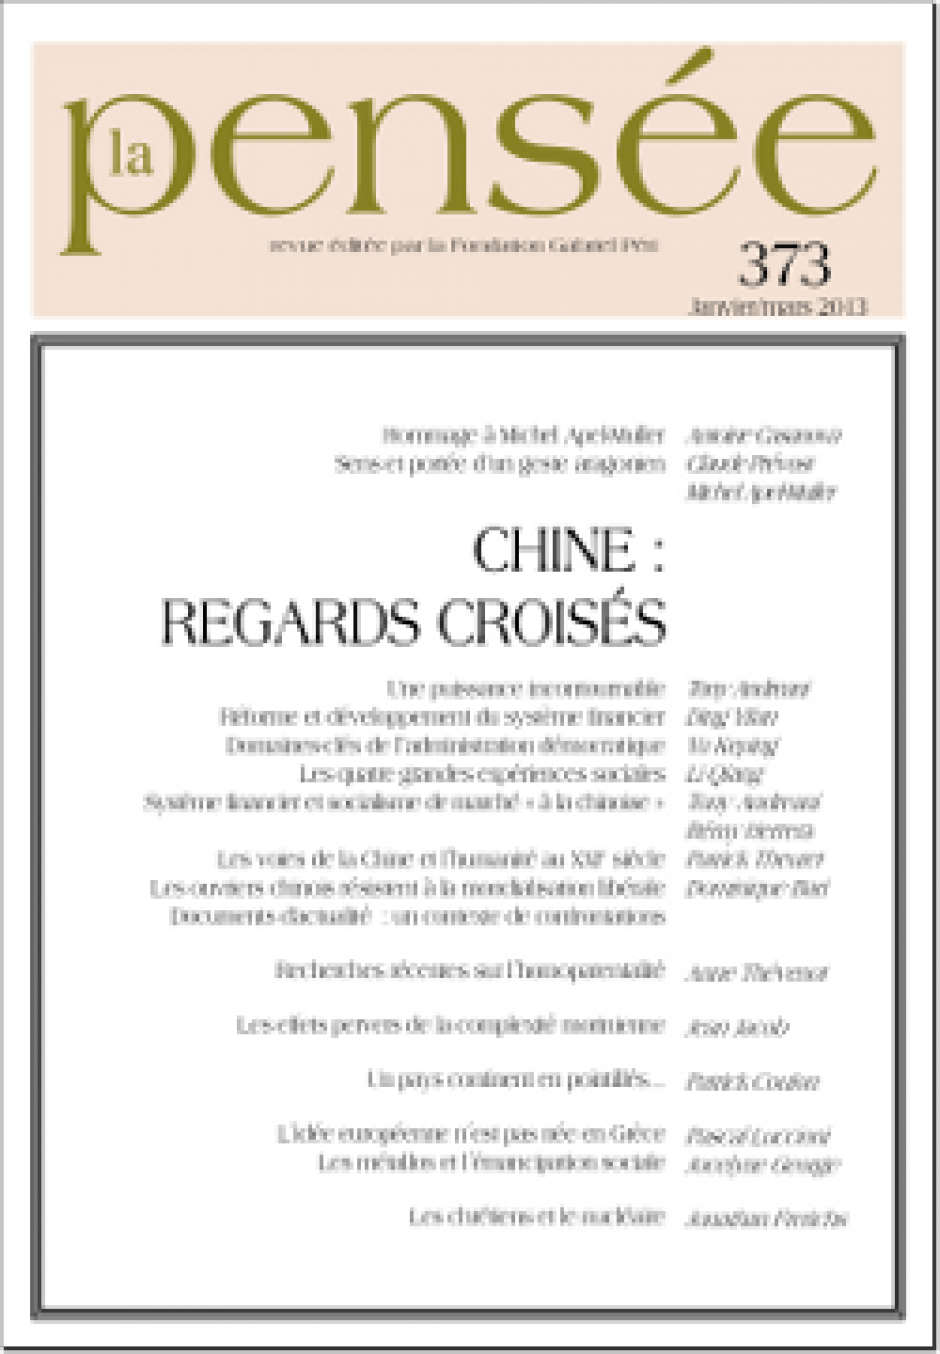 « Chine : Regards croisés »